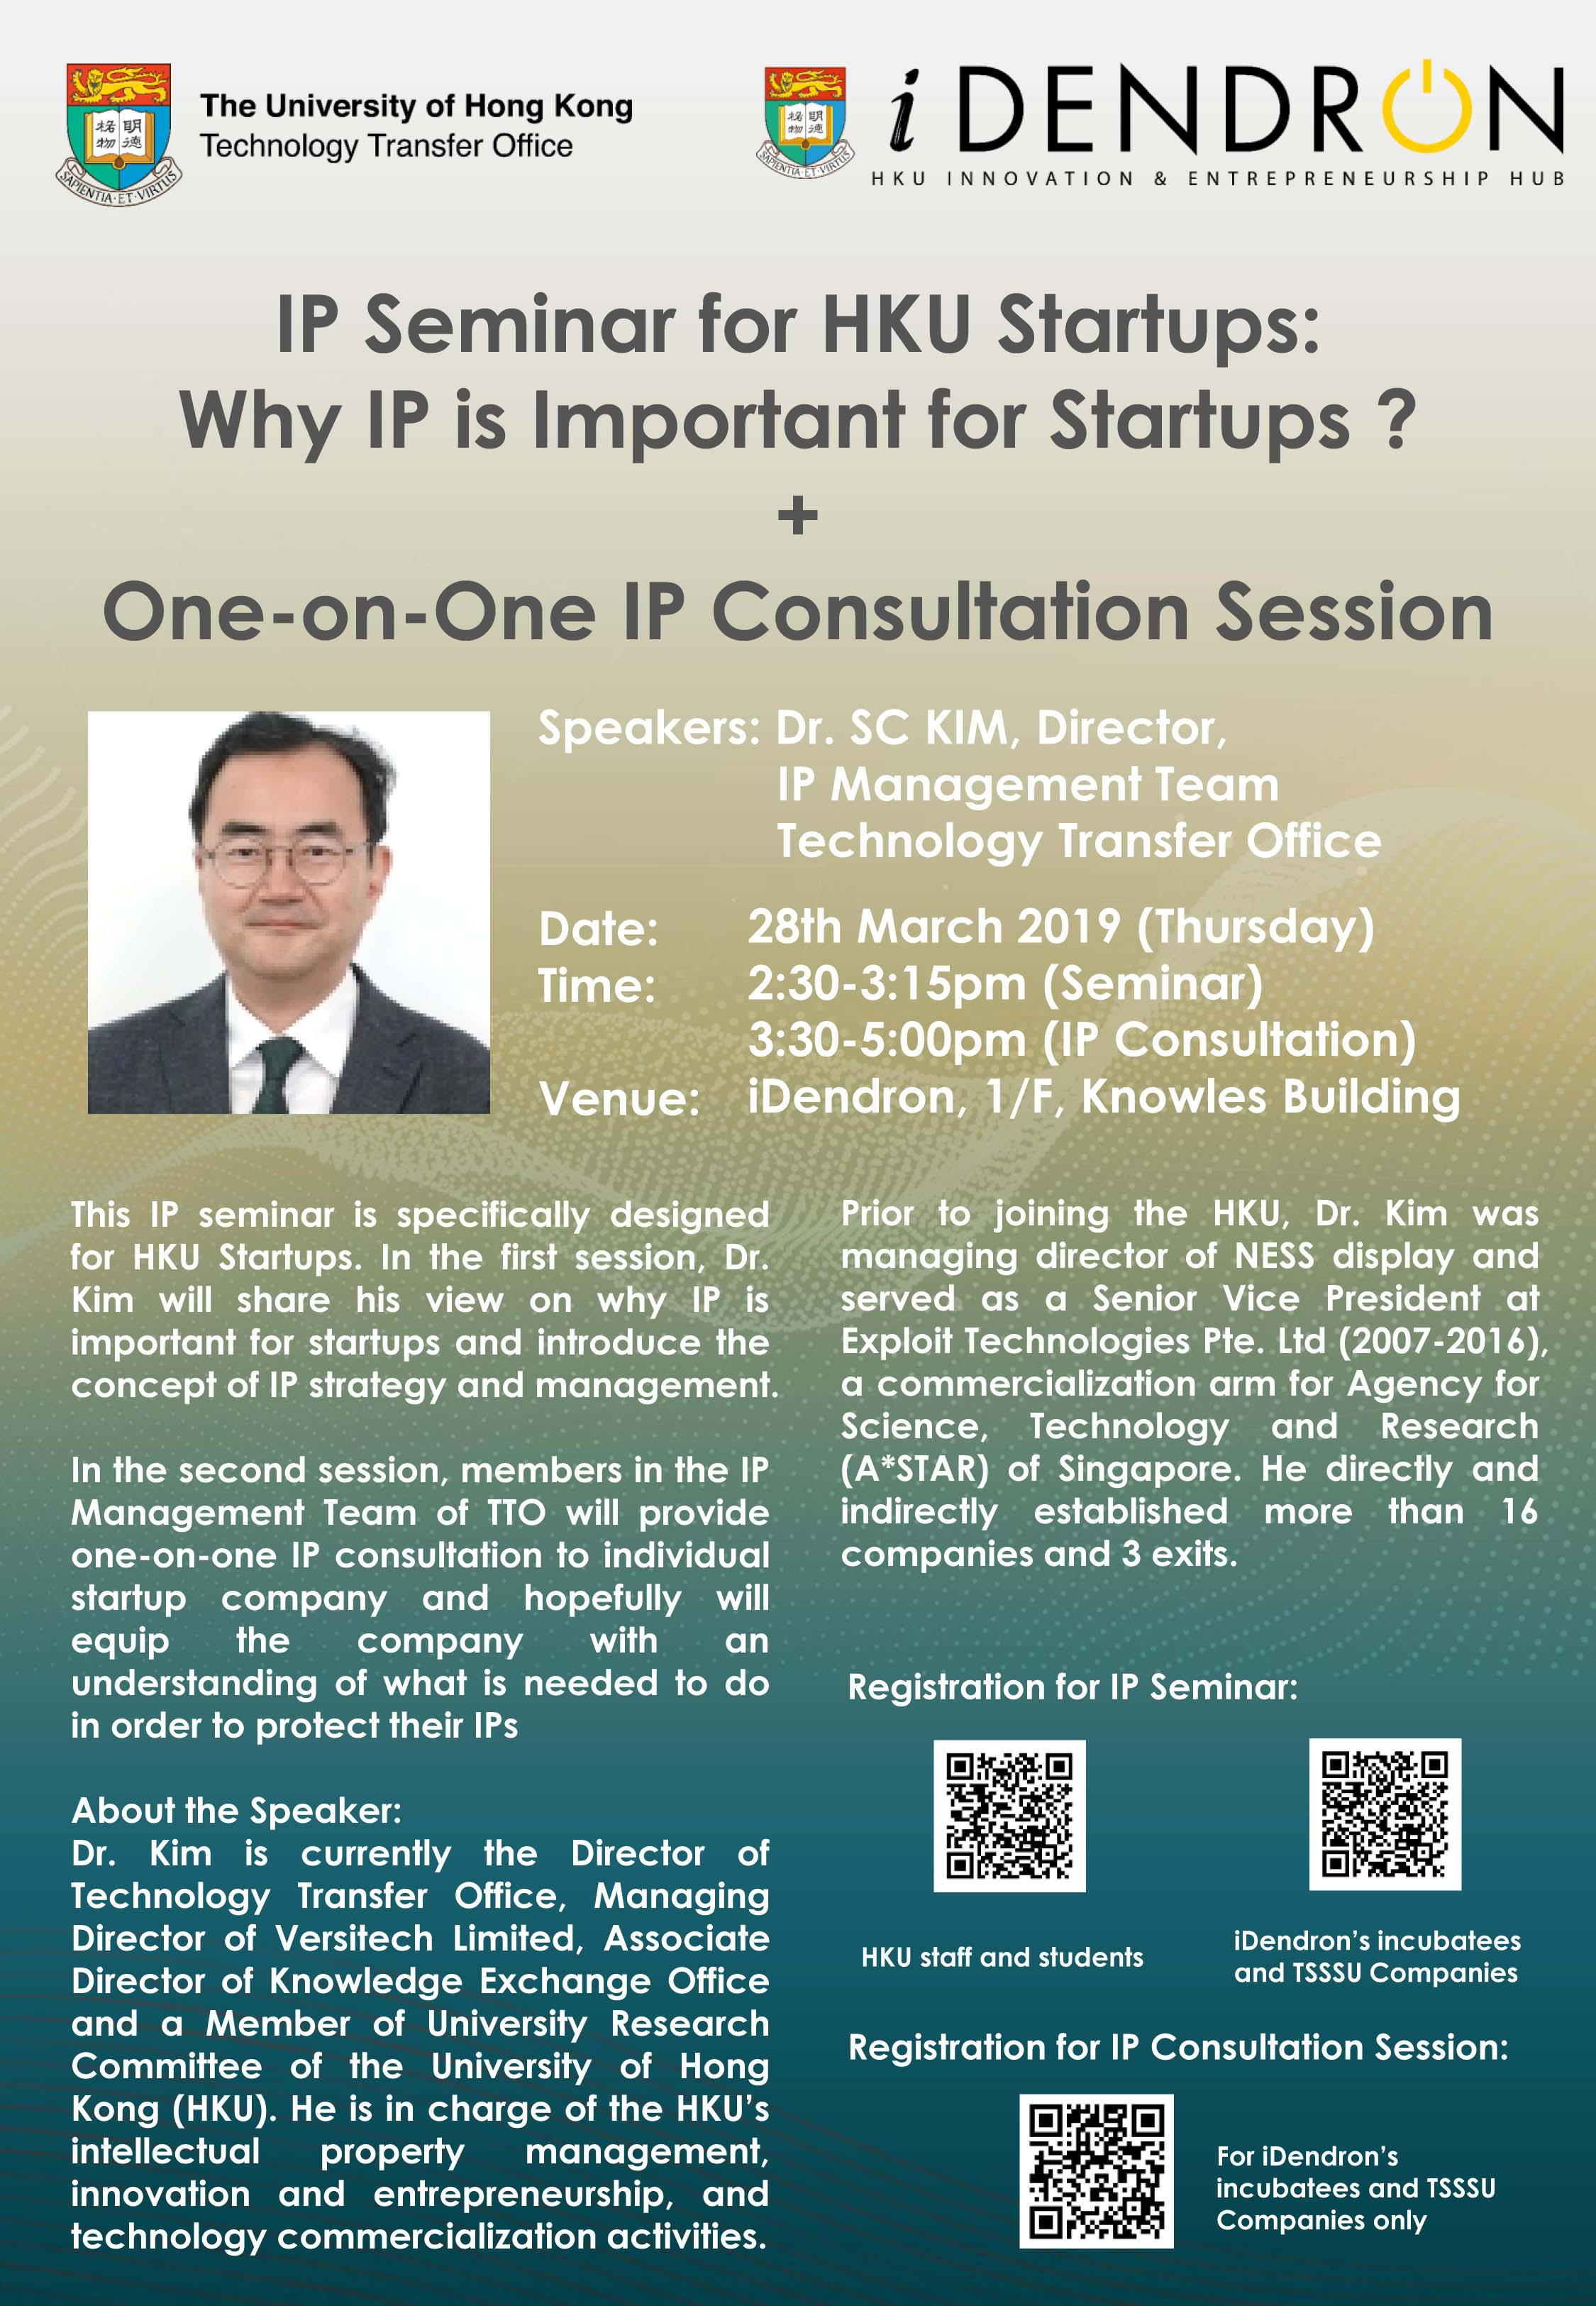 IP Seminar for Startups